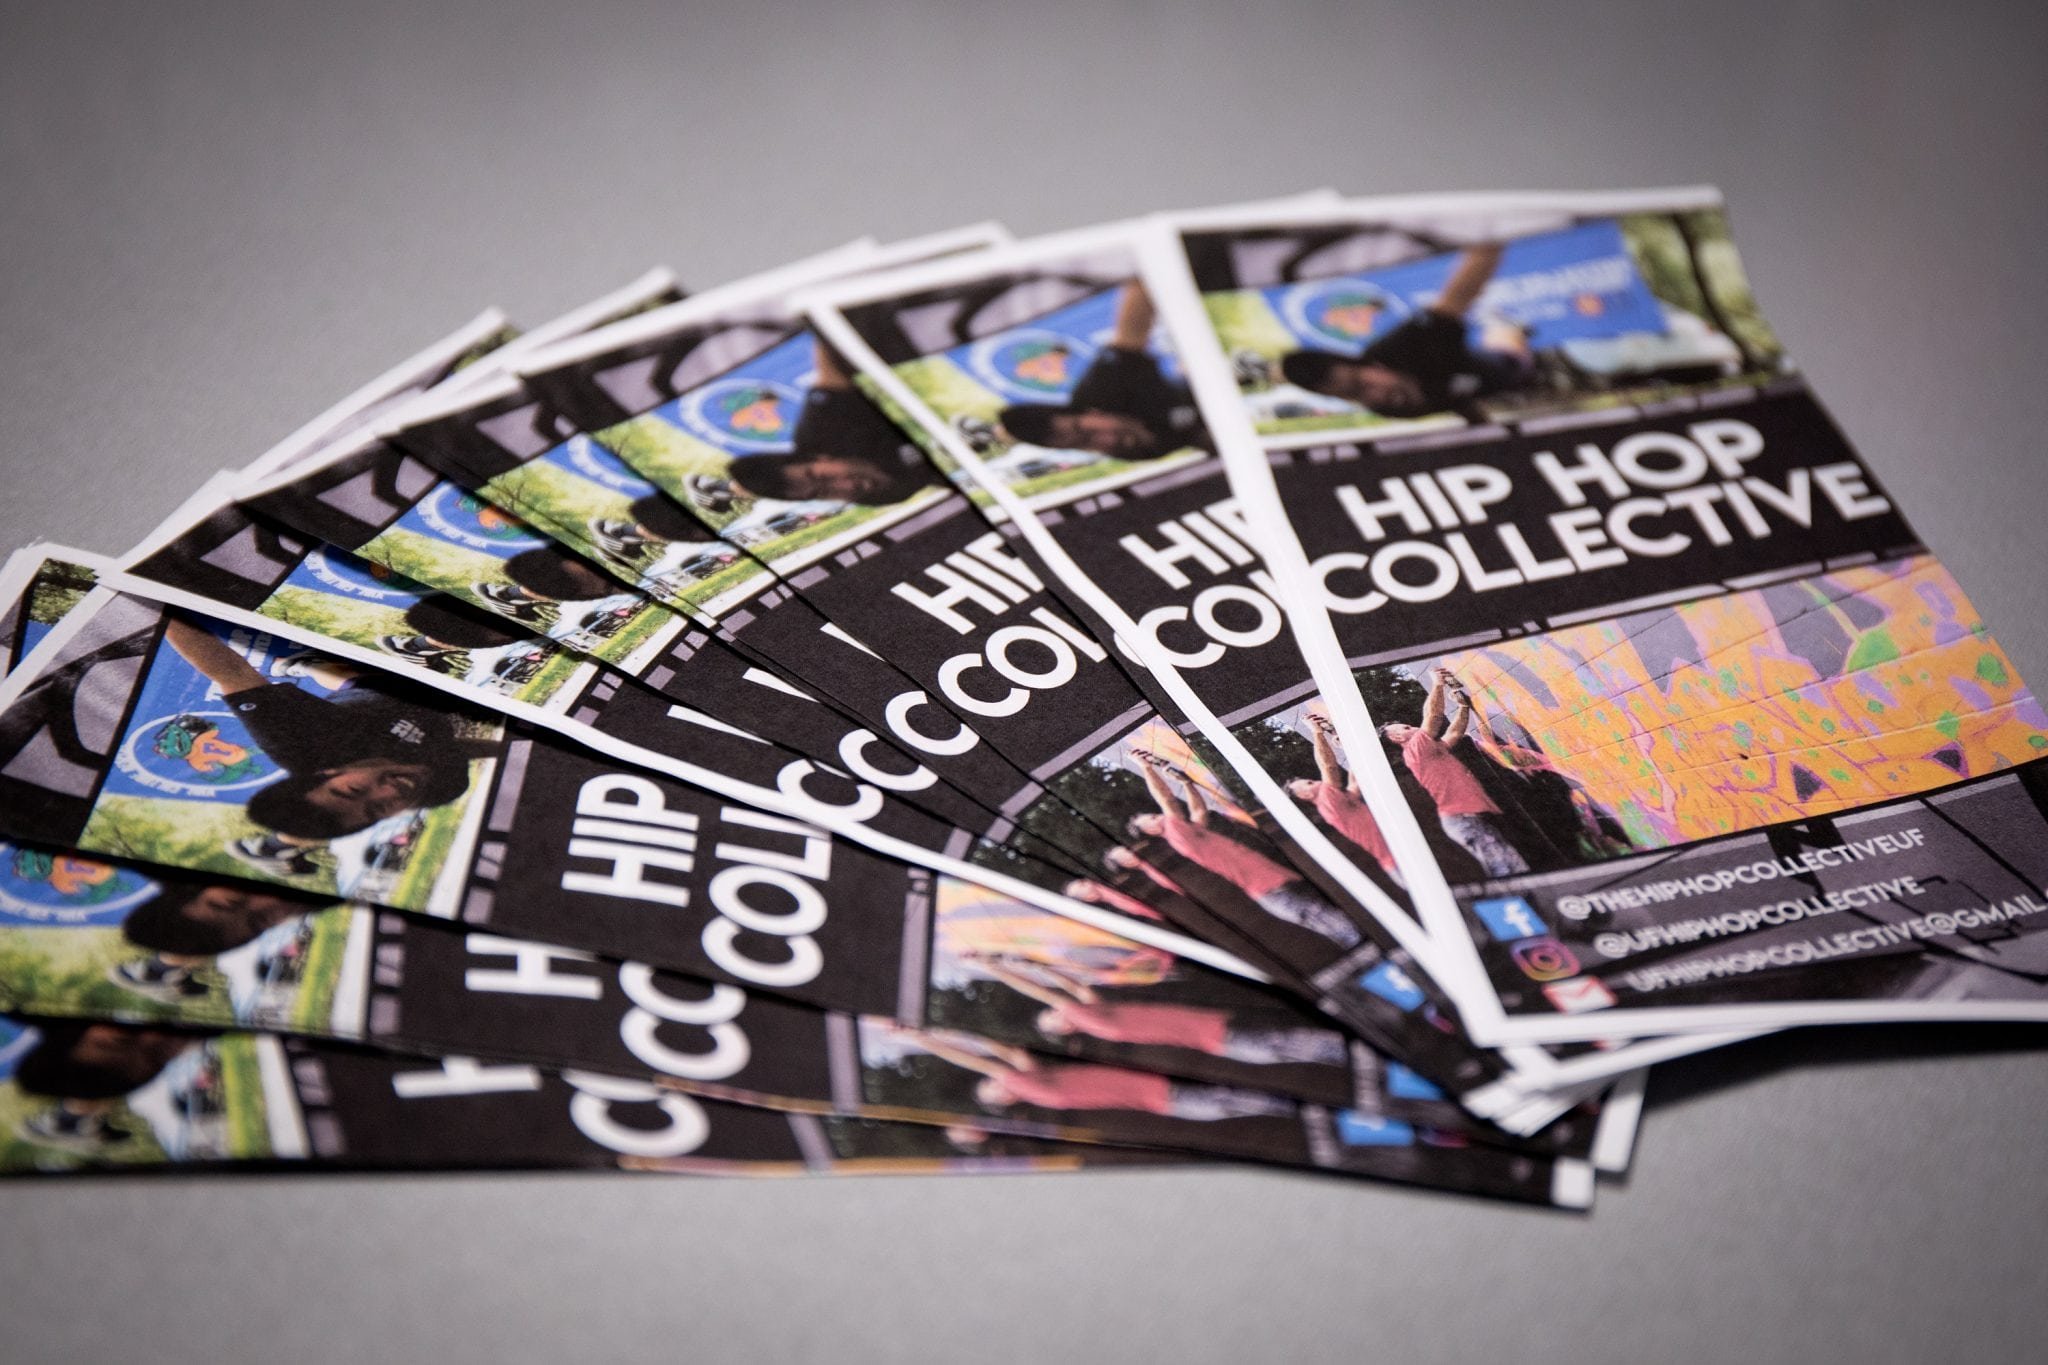 Hip Hop Collective at UF: September's #CreateInPlace